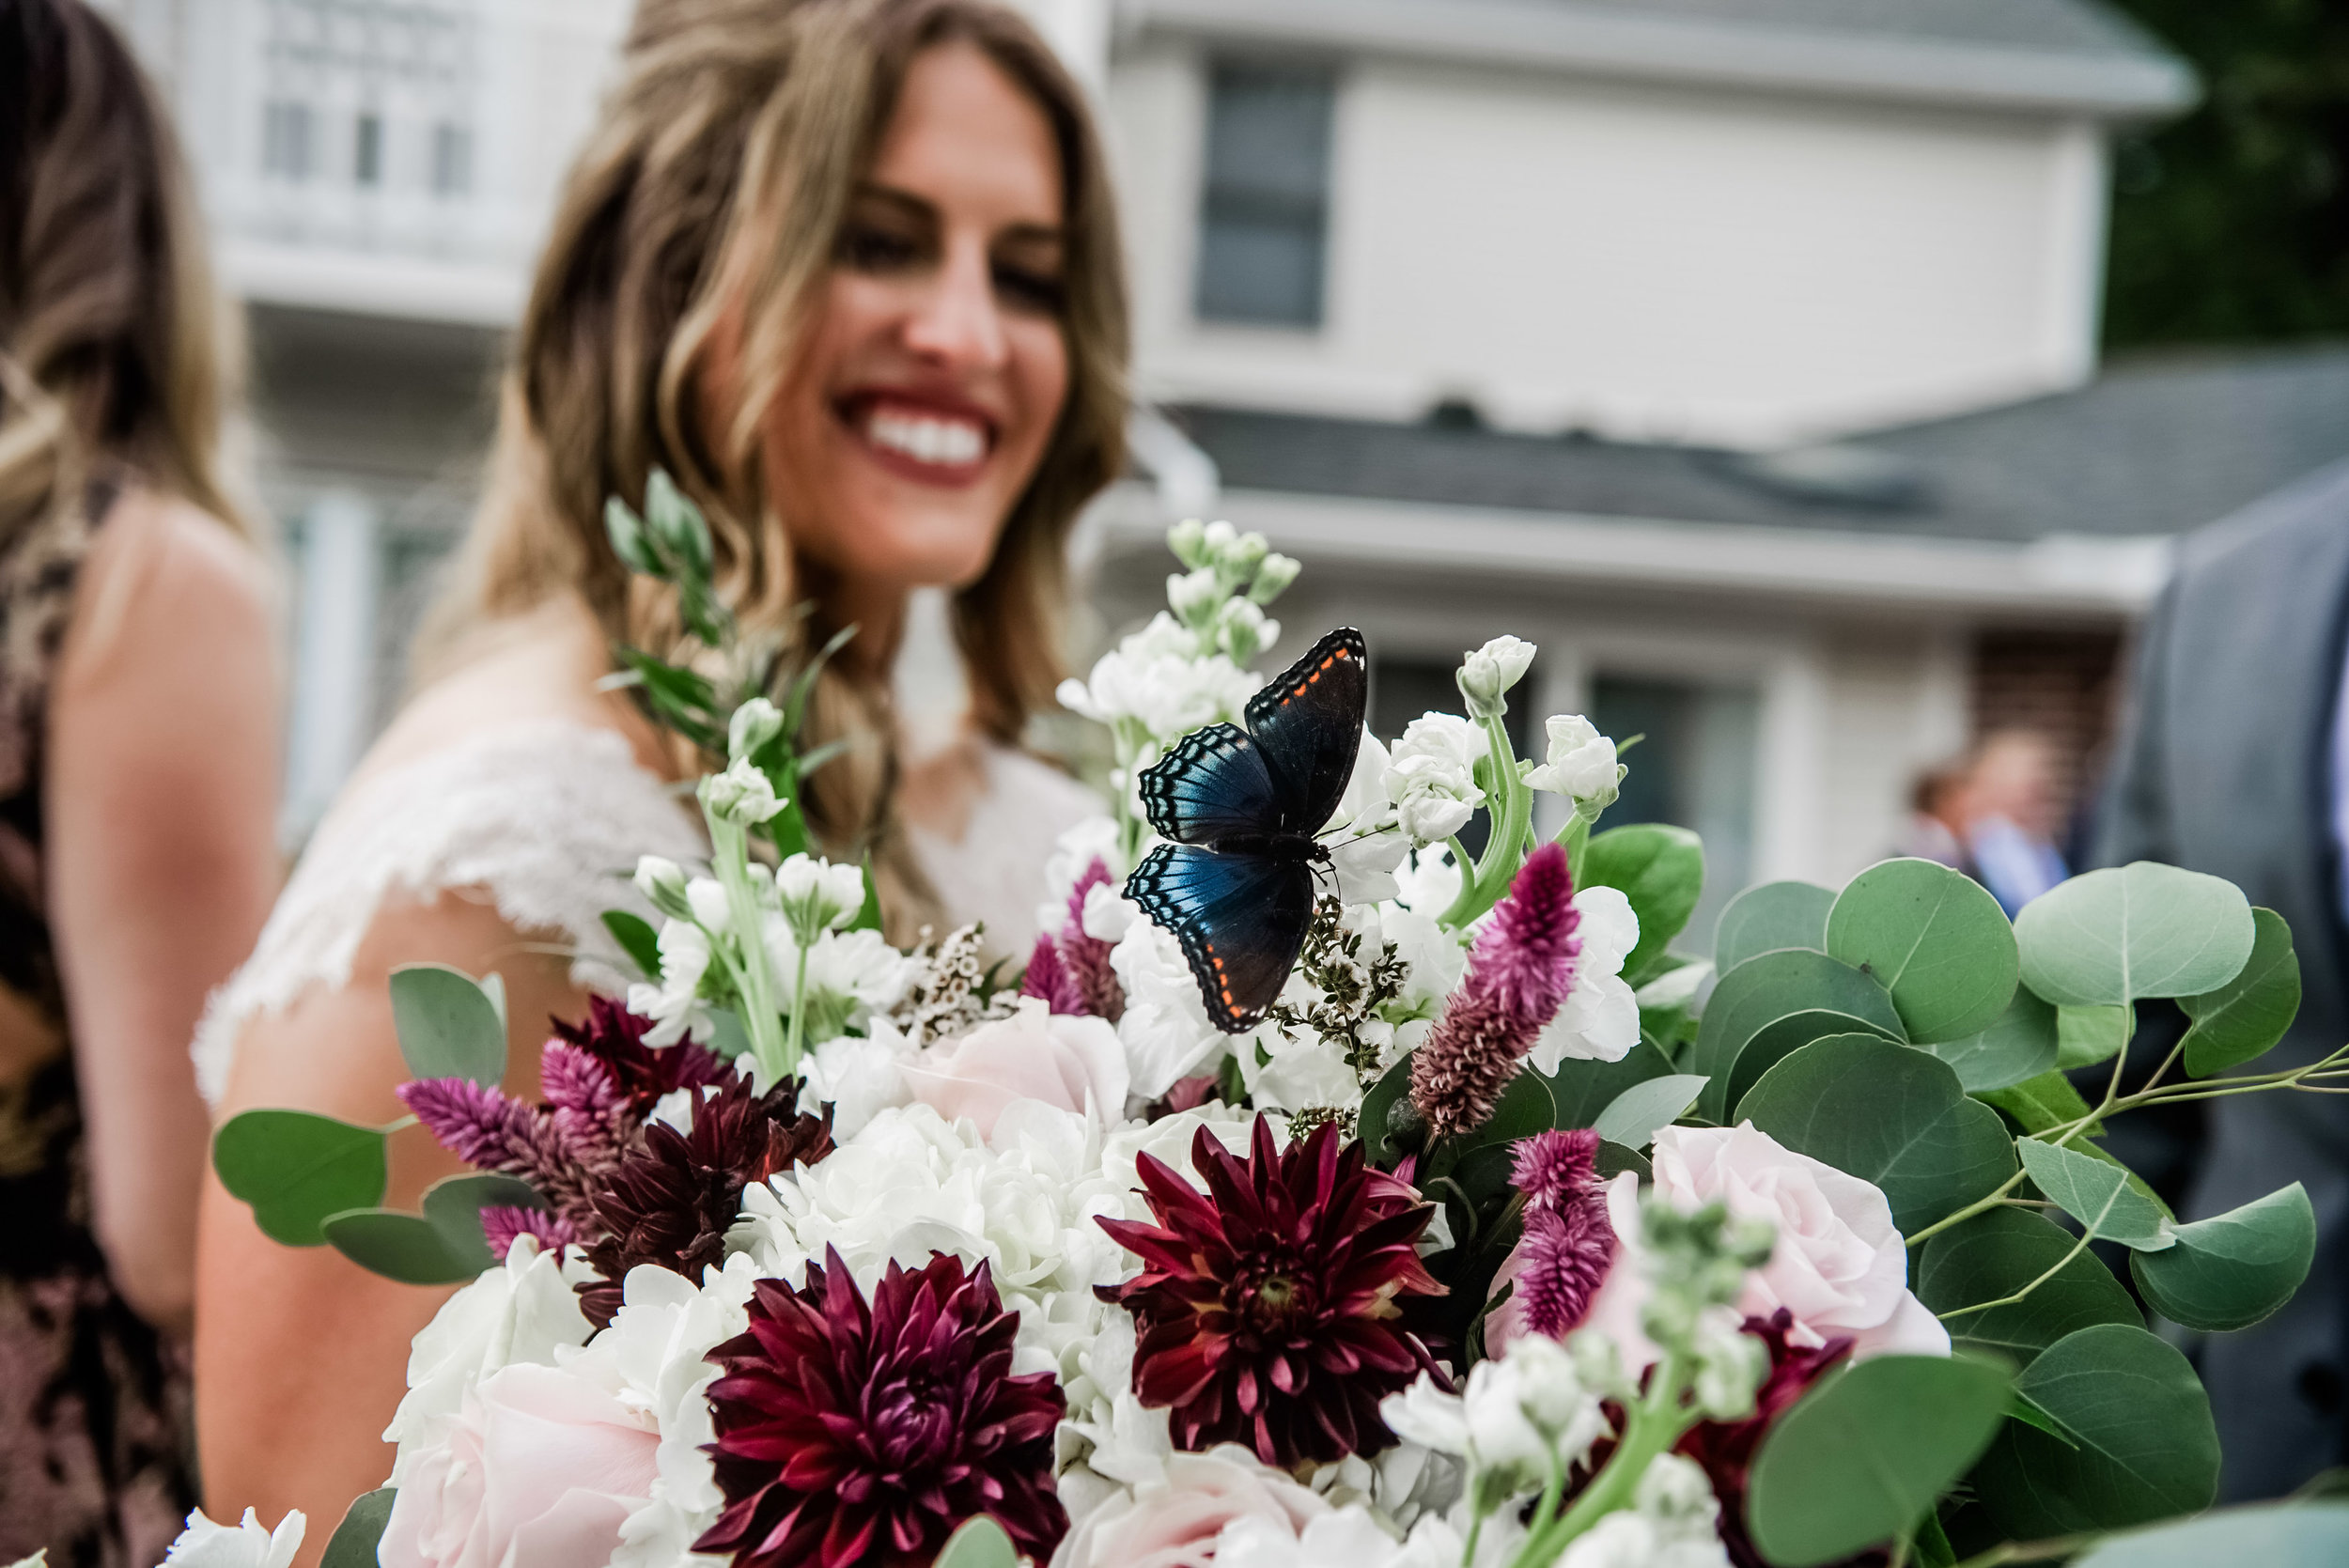 Bride with burgundy wedding bouquet at Pittsburgh wedding planned by Exhale Events. Find more wedding inspiration at exhale-events.com!